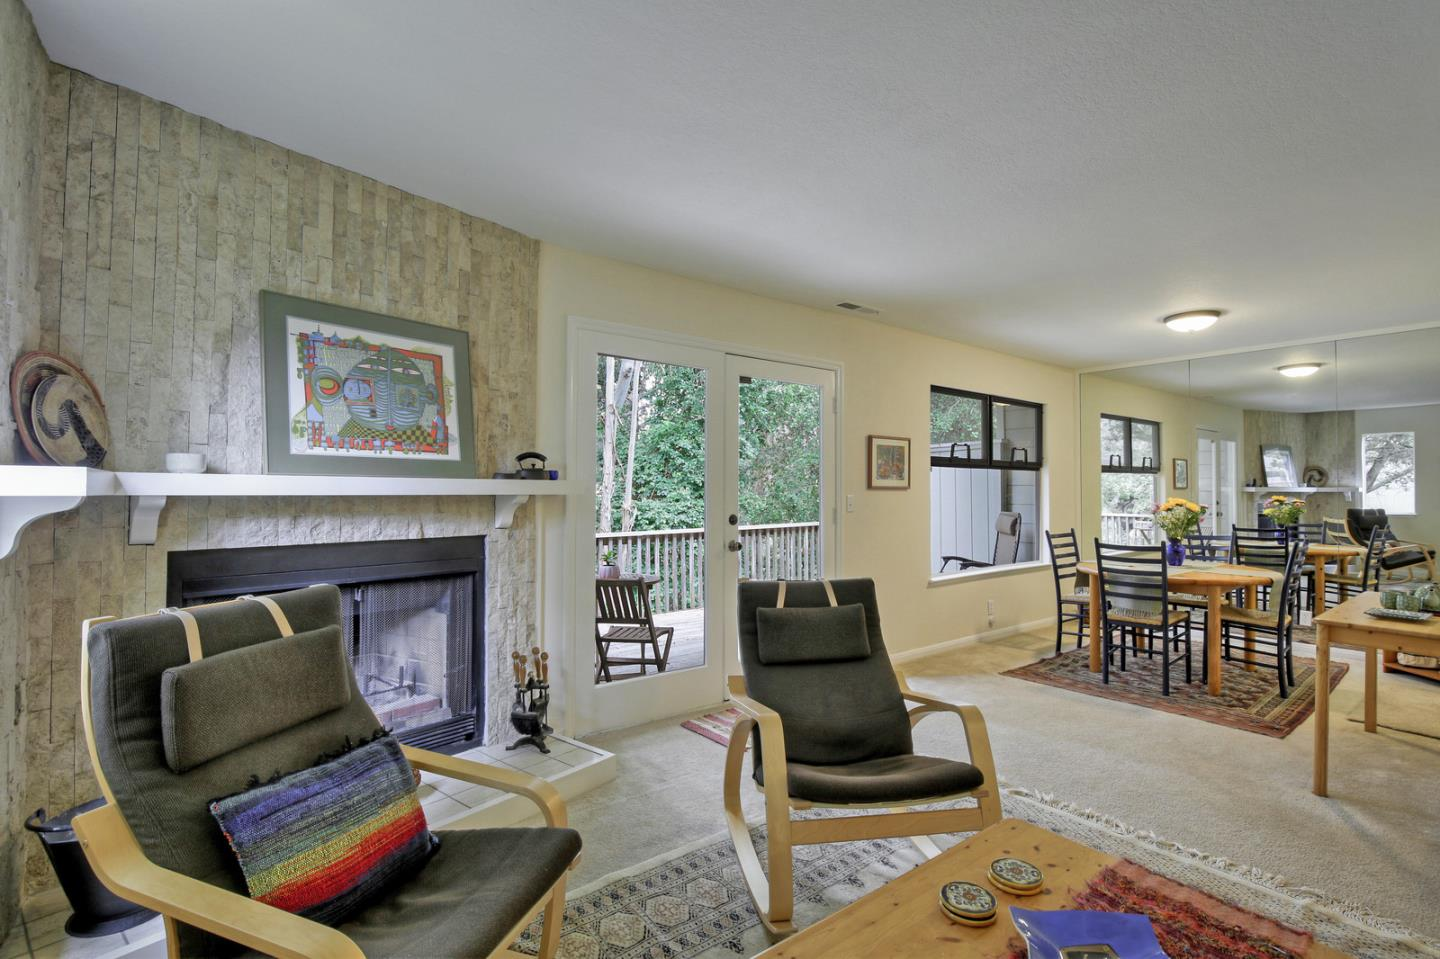 Wonderful end unit location with greenbelt views. The attached 1 car garage at street level offers parking and ample storage. Walk in through the garage to the sprawling three level home. Downstairs has great separation of space with an eat in kitchen, separate dining area and cozy living room complete with a fireplace. The double glass doors lead to the deck where you can relax and enjoy the greenbelt views and wildlife...The second floor has the master bedroom, also with an attached deck and beautiful greenbelt views, a walk in closet and bathroom with a jacuzzi tub and garden window. Oh so relaxing...a second bedroom and bathroom also occupy the second floor. Making our way to the top... The top floor is flooded with light the bonus space could be used as a 3rd bedroom, office, art room or guest space. County shows 2 bedrooms, but lives like the 3 bedroom floor plans. This home is close to shopping, dining, bus lines, HWY 1, medical facilities and more. Great home, great location!